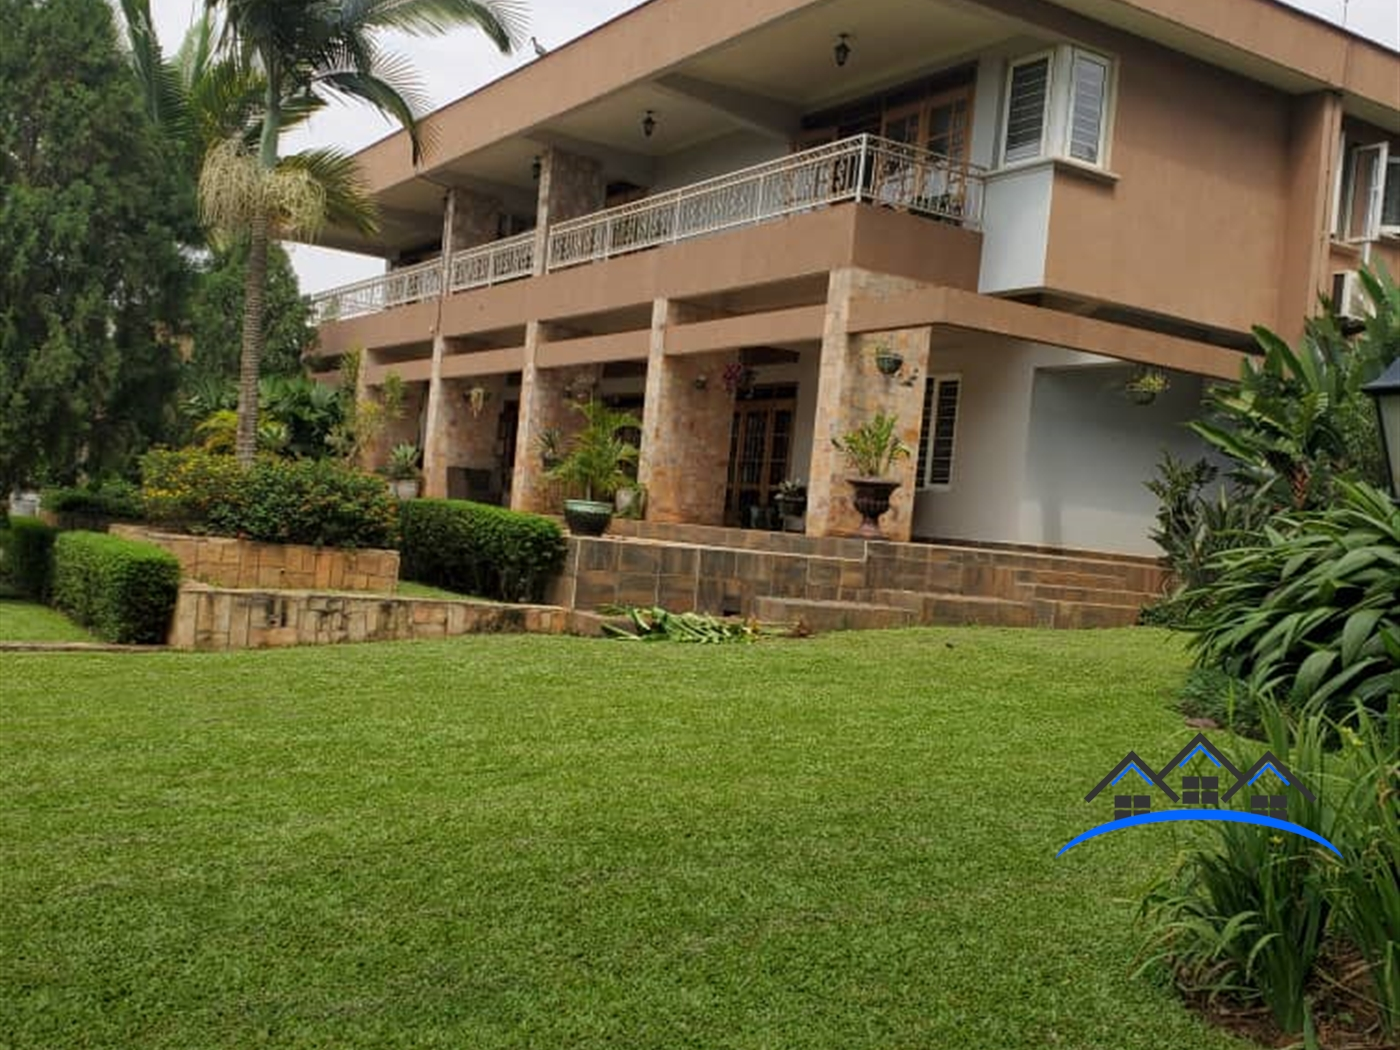 Storyed house for sale in Bbunga Kampala